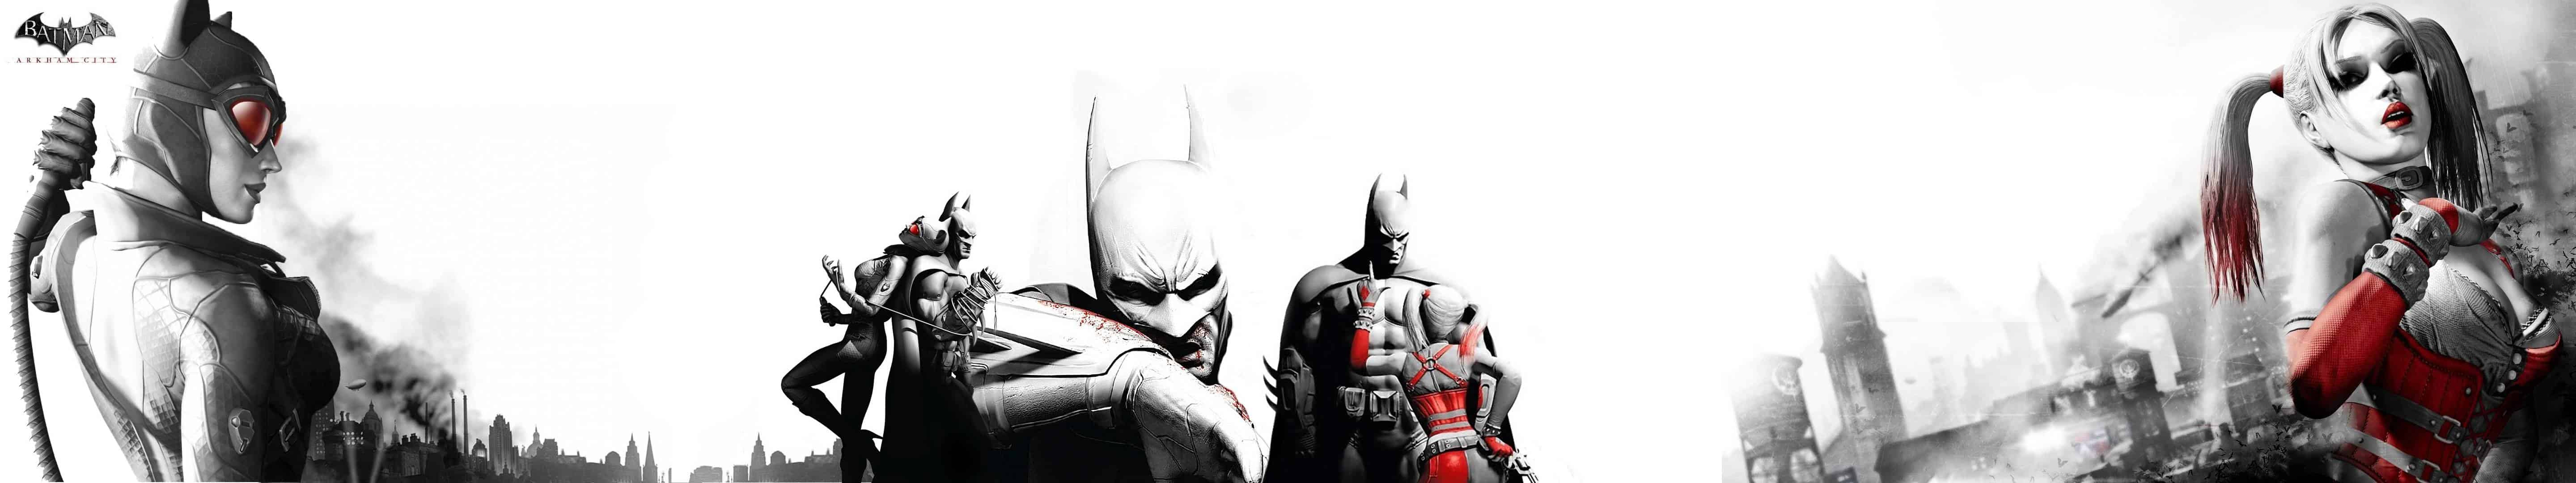 batman arkham city harley quinn triple monitor wallpaper